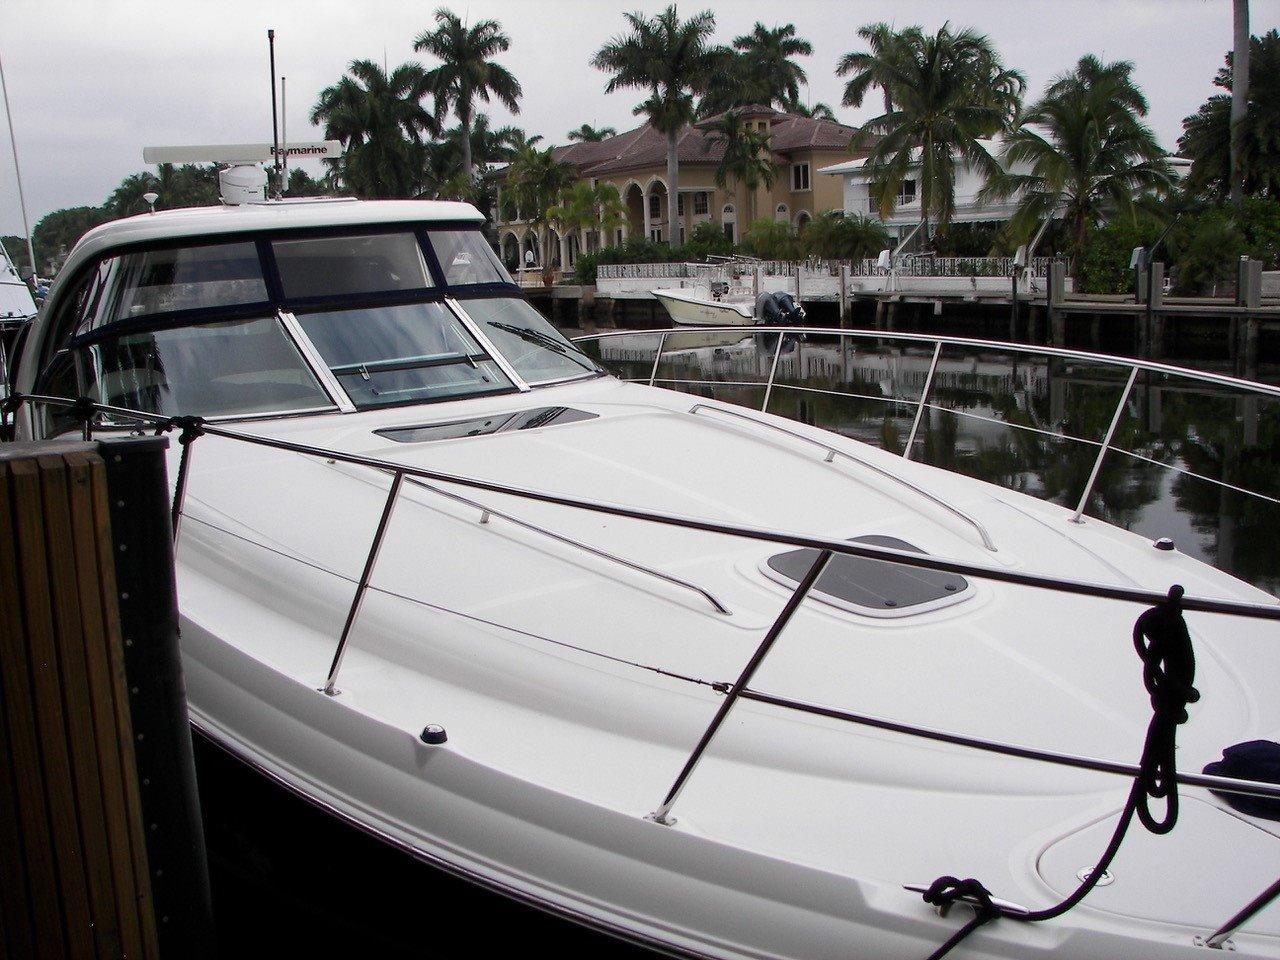 39 sea ray satisfied 2005 ft lauderdale denison yacht for 41 ft mainship grand salon